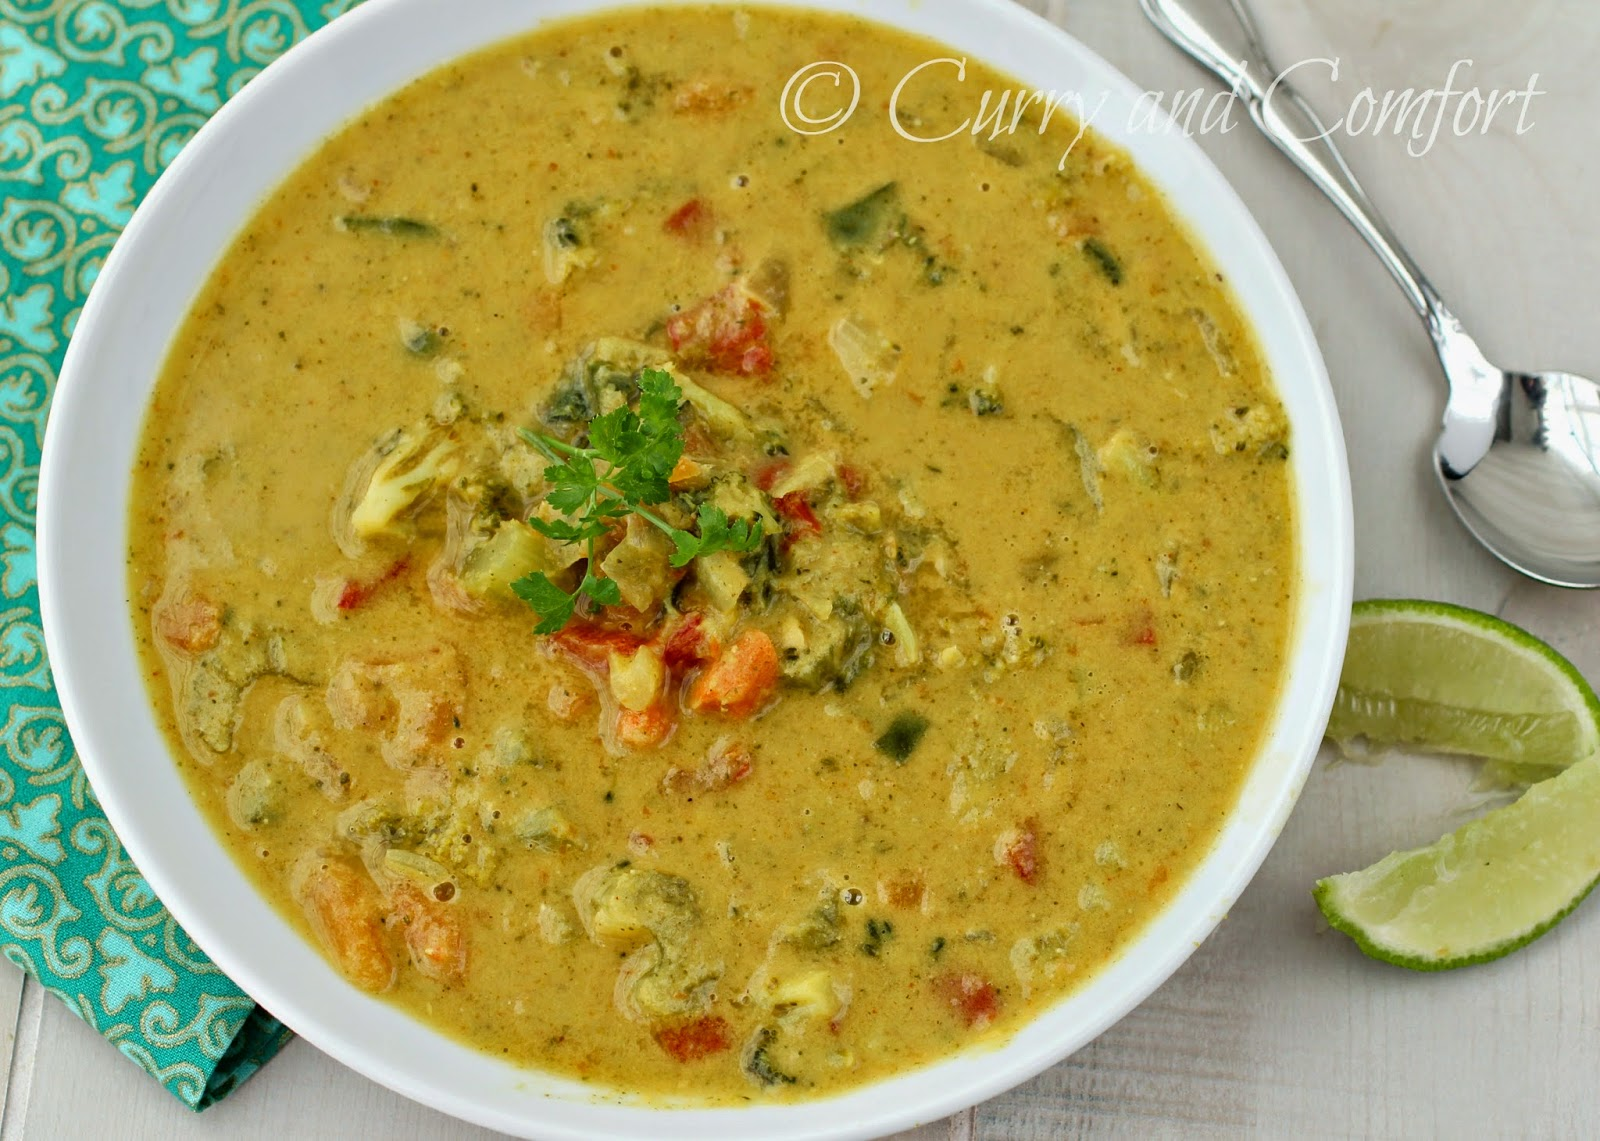 Curry and Comfort: Broccoli Lentil Curry Soup